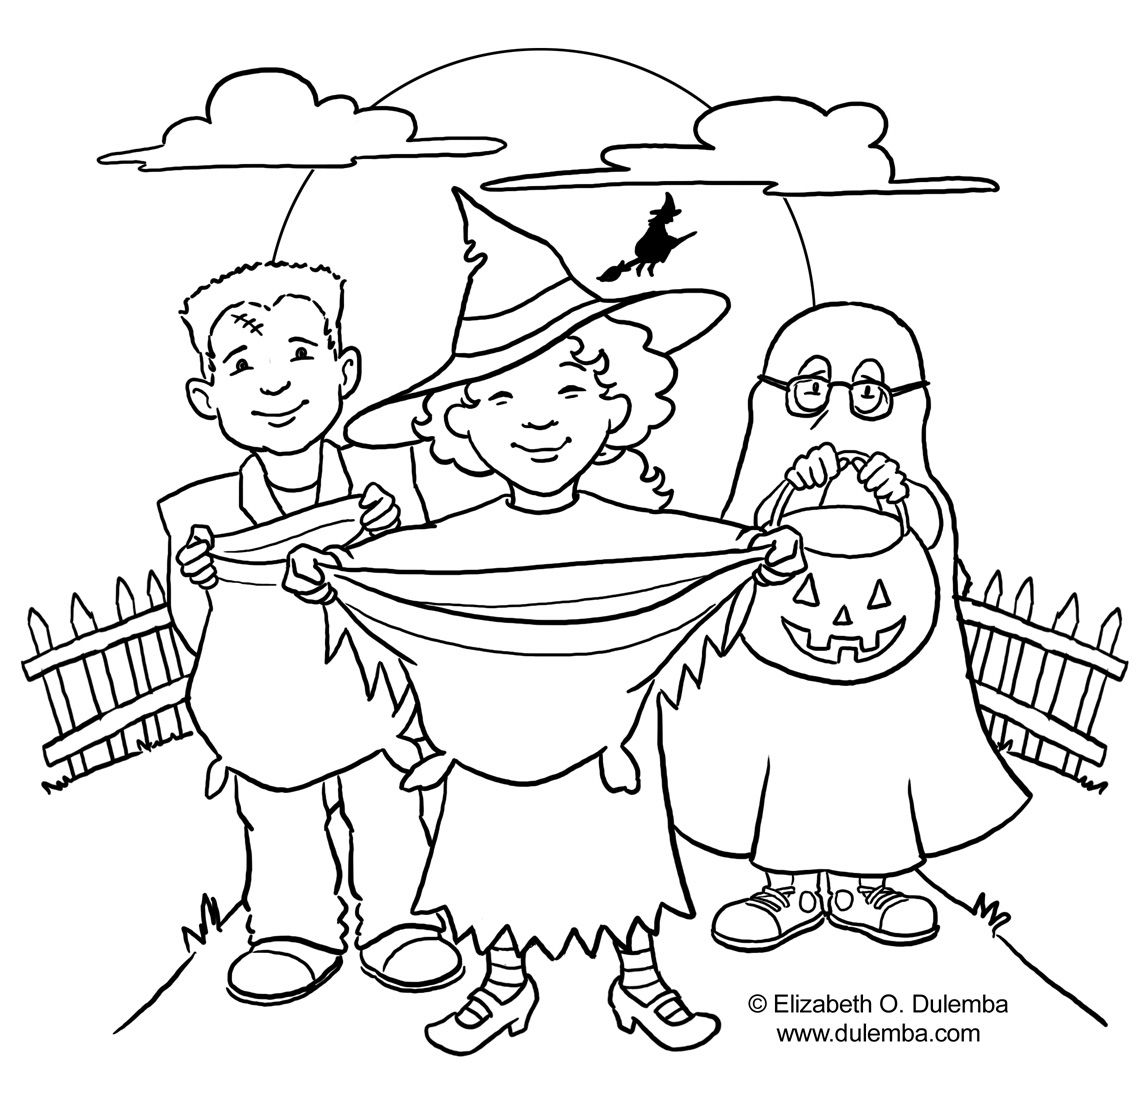 Trick or treat coloring pages | Halloween color page | Pinterest